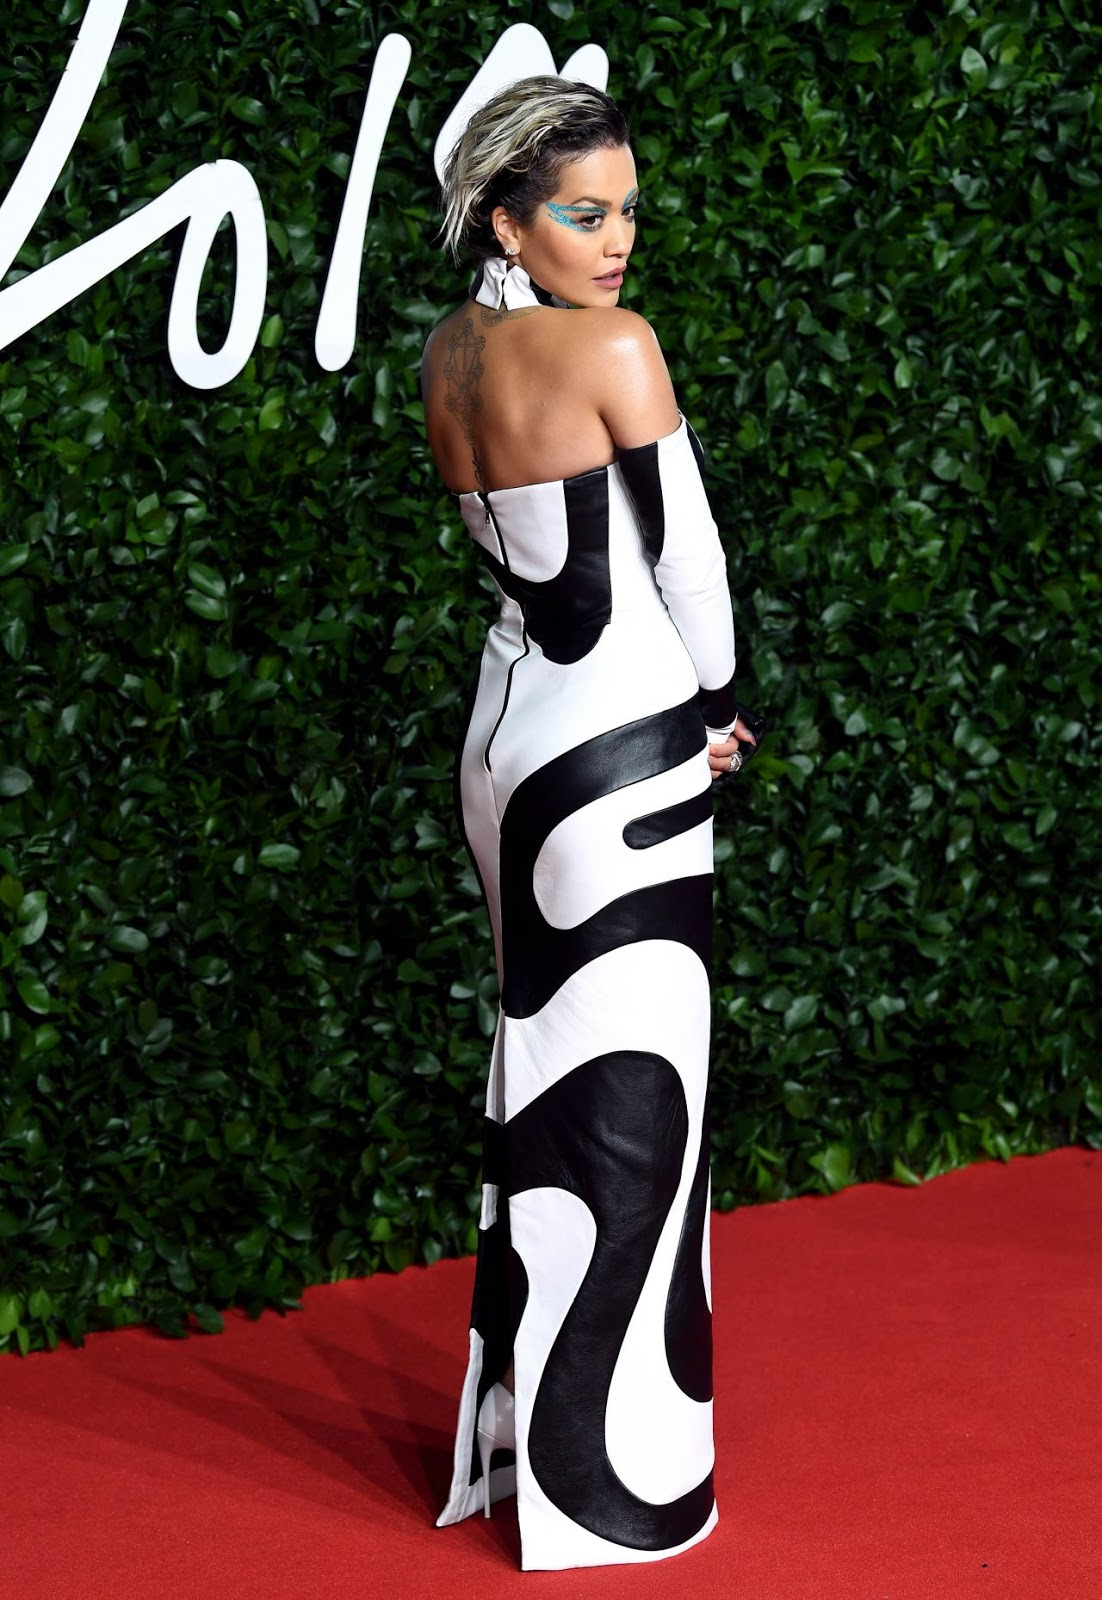 Rita Ora – Fashion Awards 2019 Red Carpet at Royal Albert Hall in London